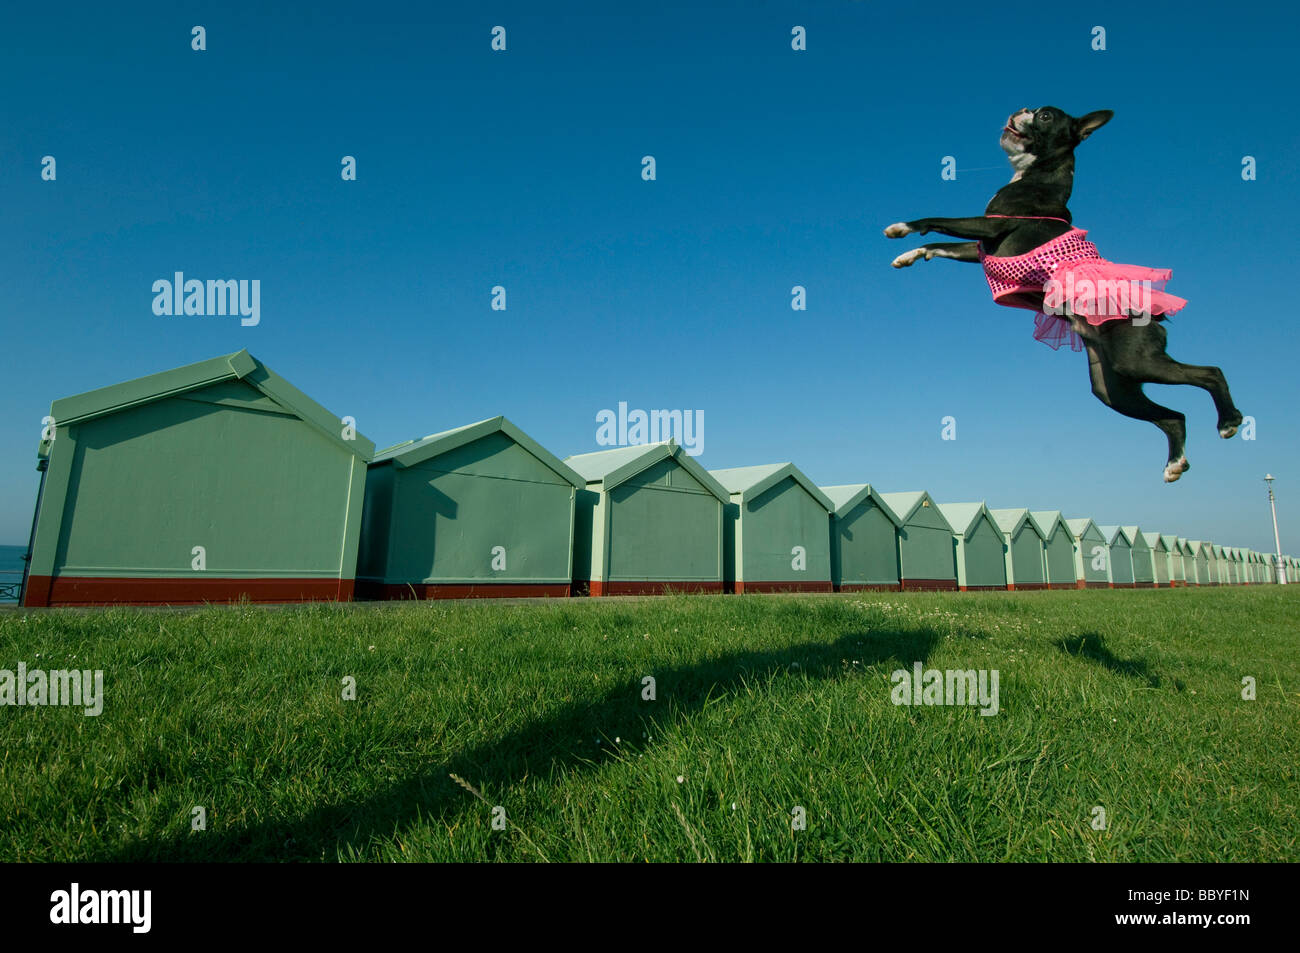 A Boston Terrier dog in a pink tutu leaping in the air by beach huts at the seaside - Stock Image